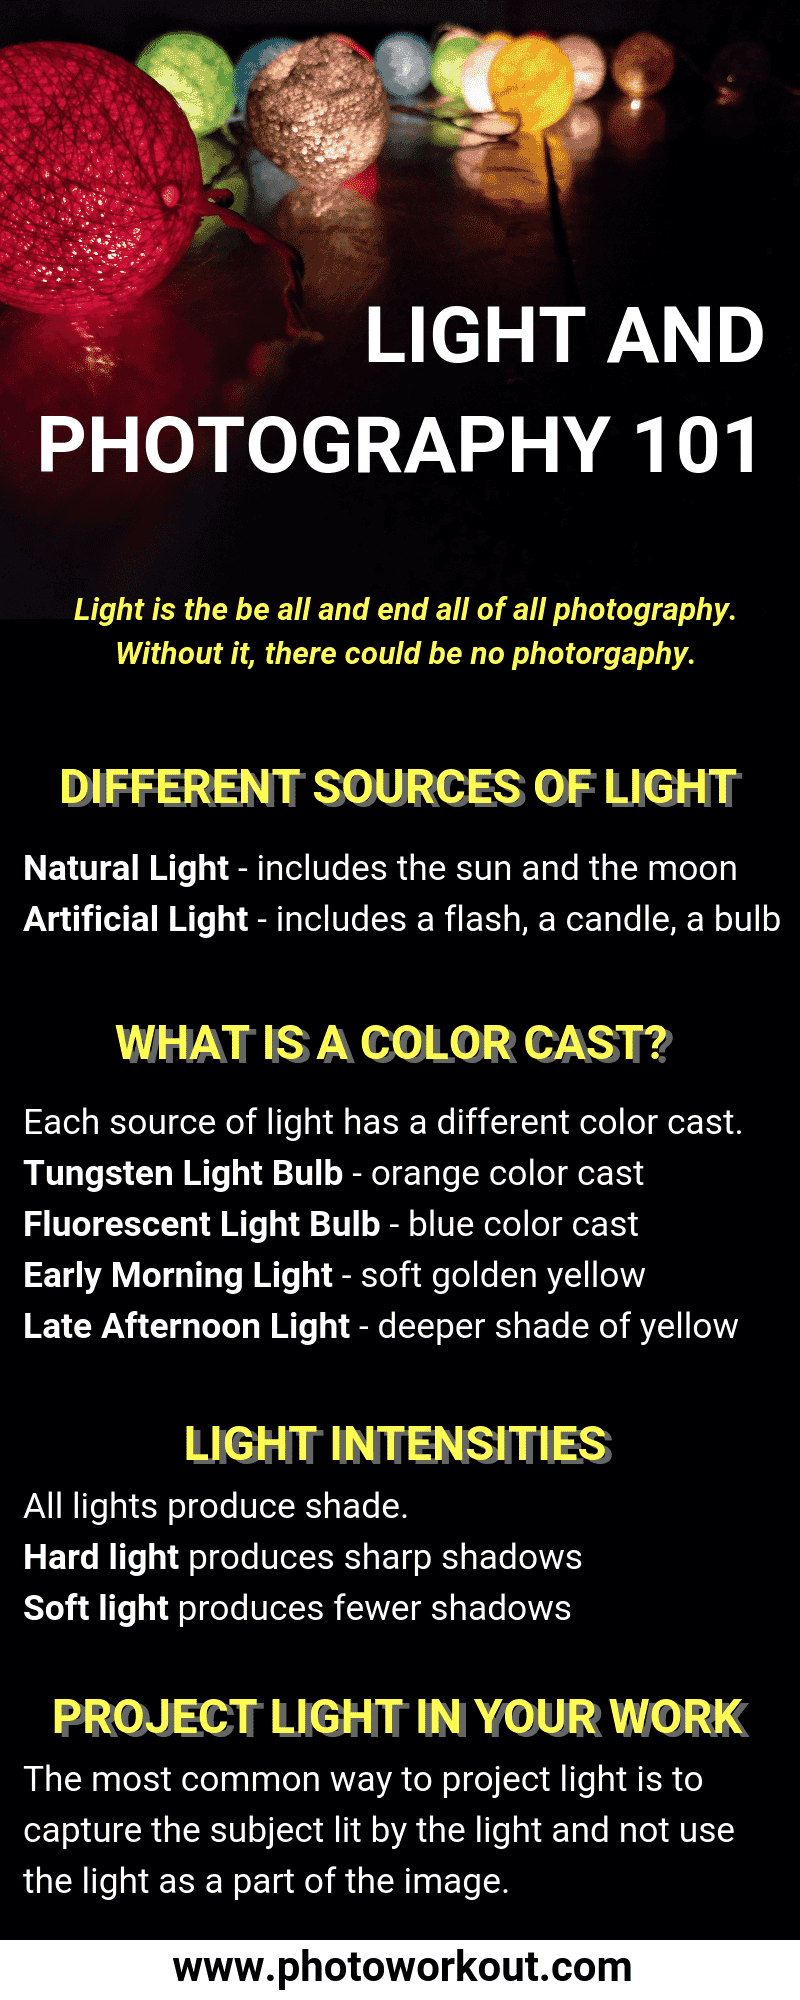 Light and Photography 101 Infographic: Sources of Light, Color Cast, Light Intensity, Project Light